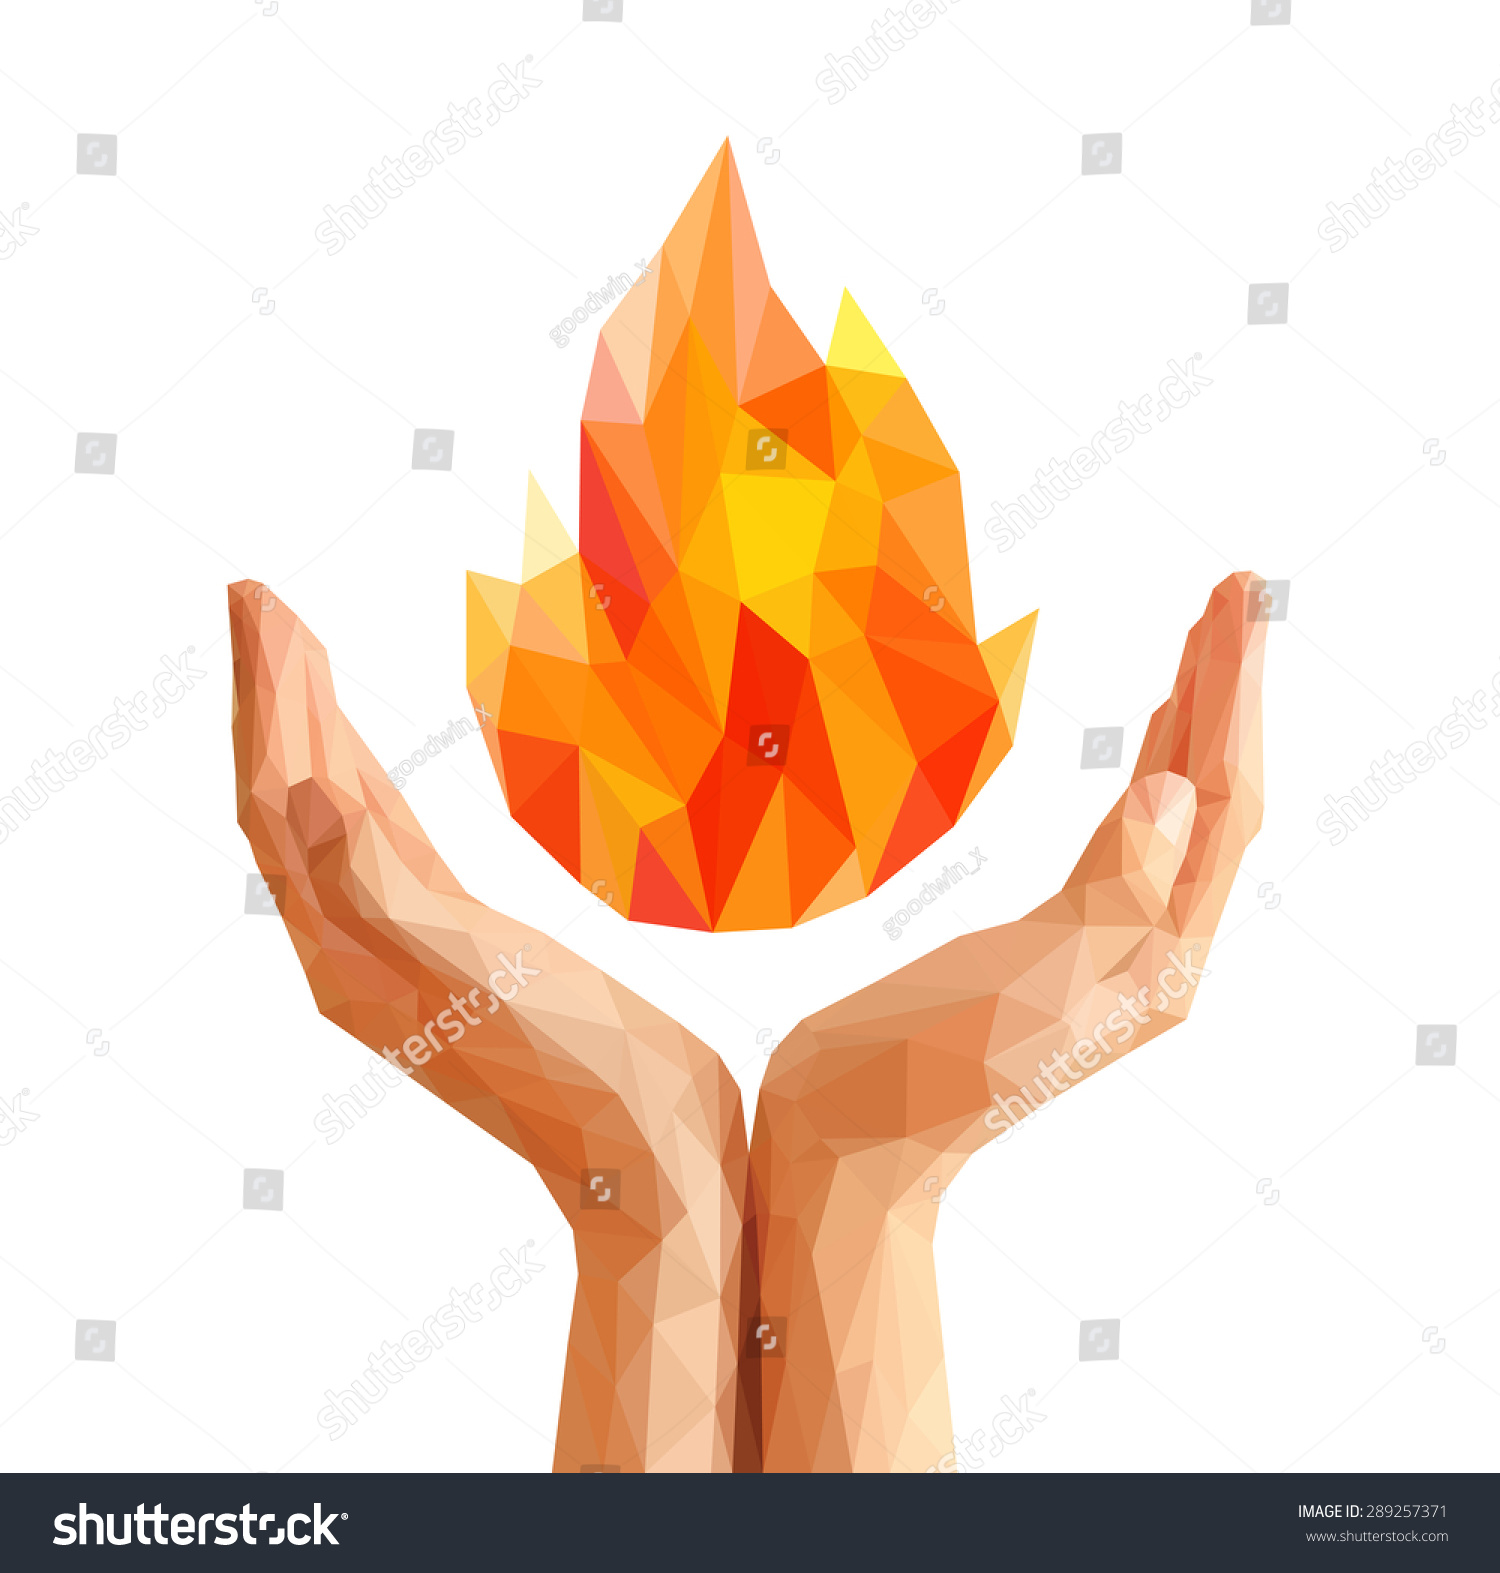 Polygon Olympic Flame Torch Flame Natural Stock Vector 289257371 ... for Olympic Torch Fire  59jwn